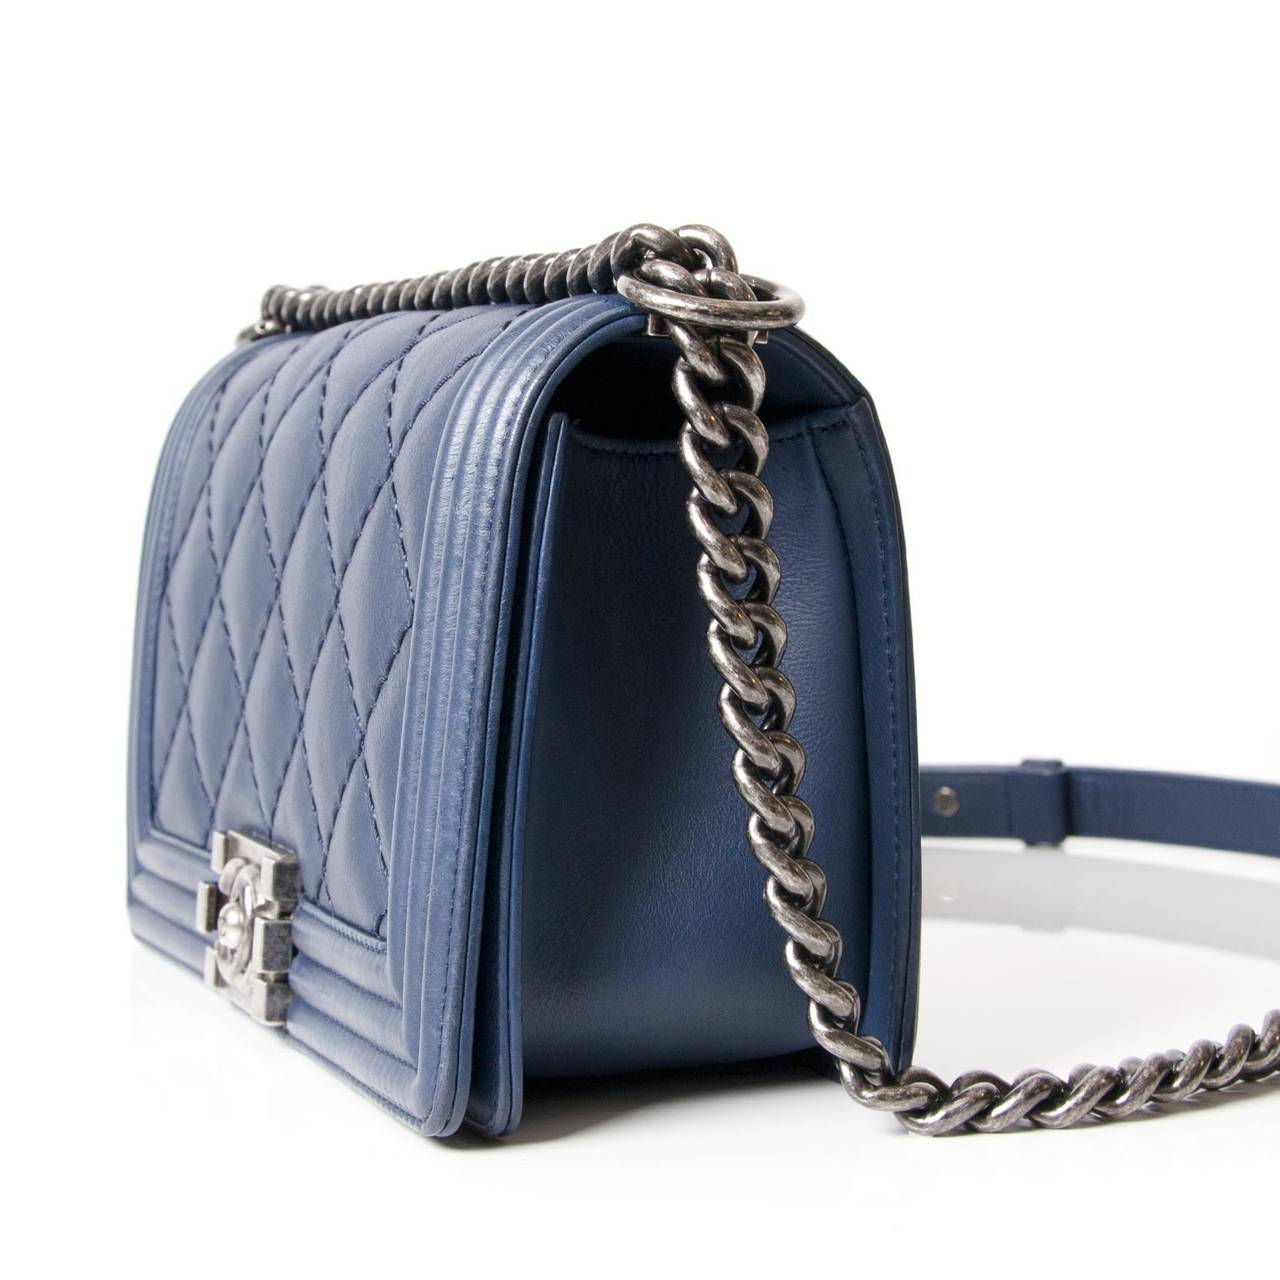 Chanel Lambskin Medium Quilted Boy Bag at 1stdibs : quilted boy tote chanel - Adamdwight.com